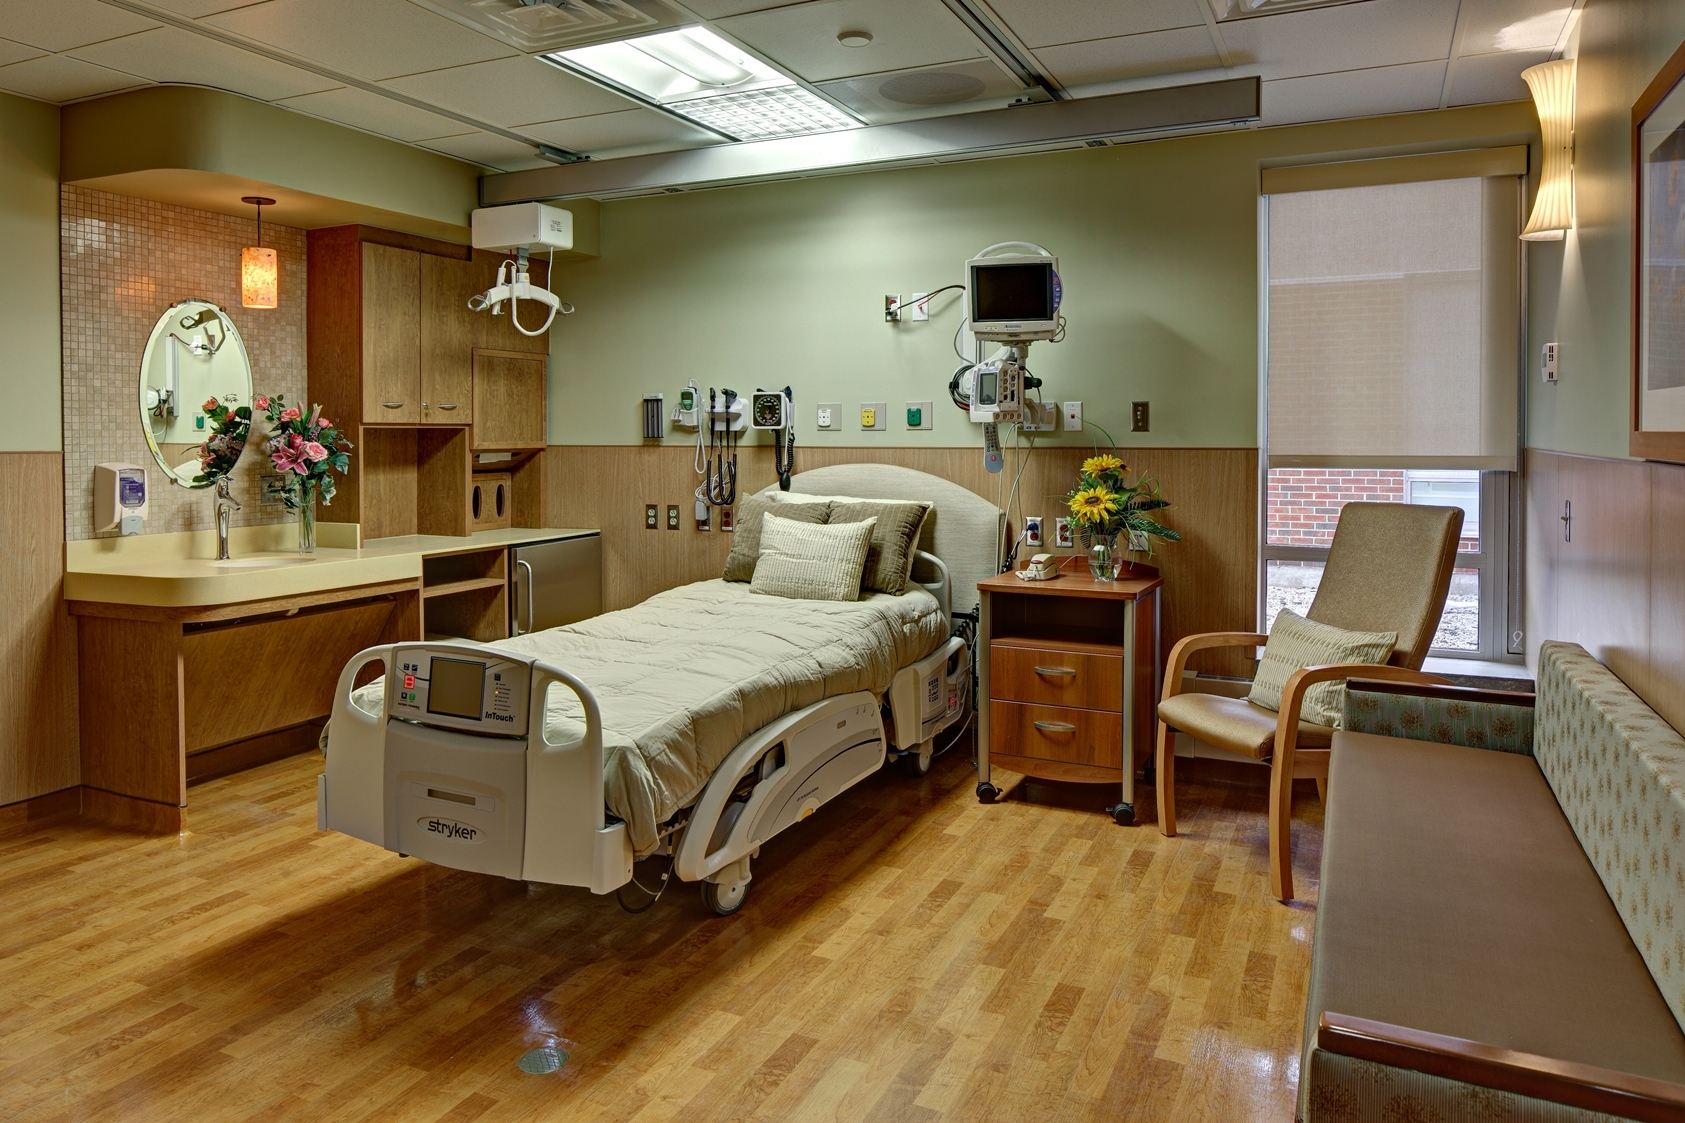 27cae6c20b0ab7c37708_1_south_patient_room.jpg